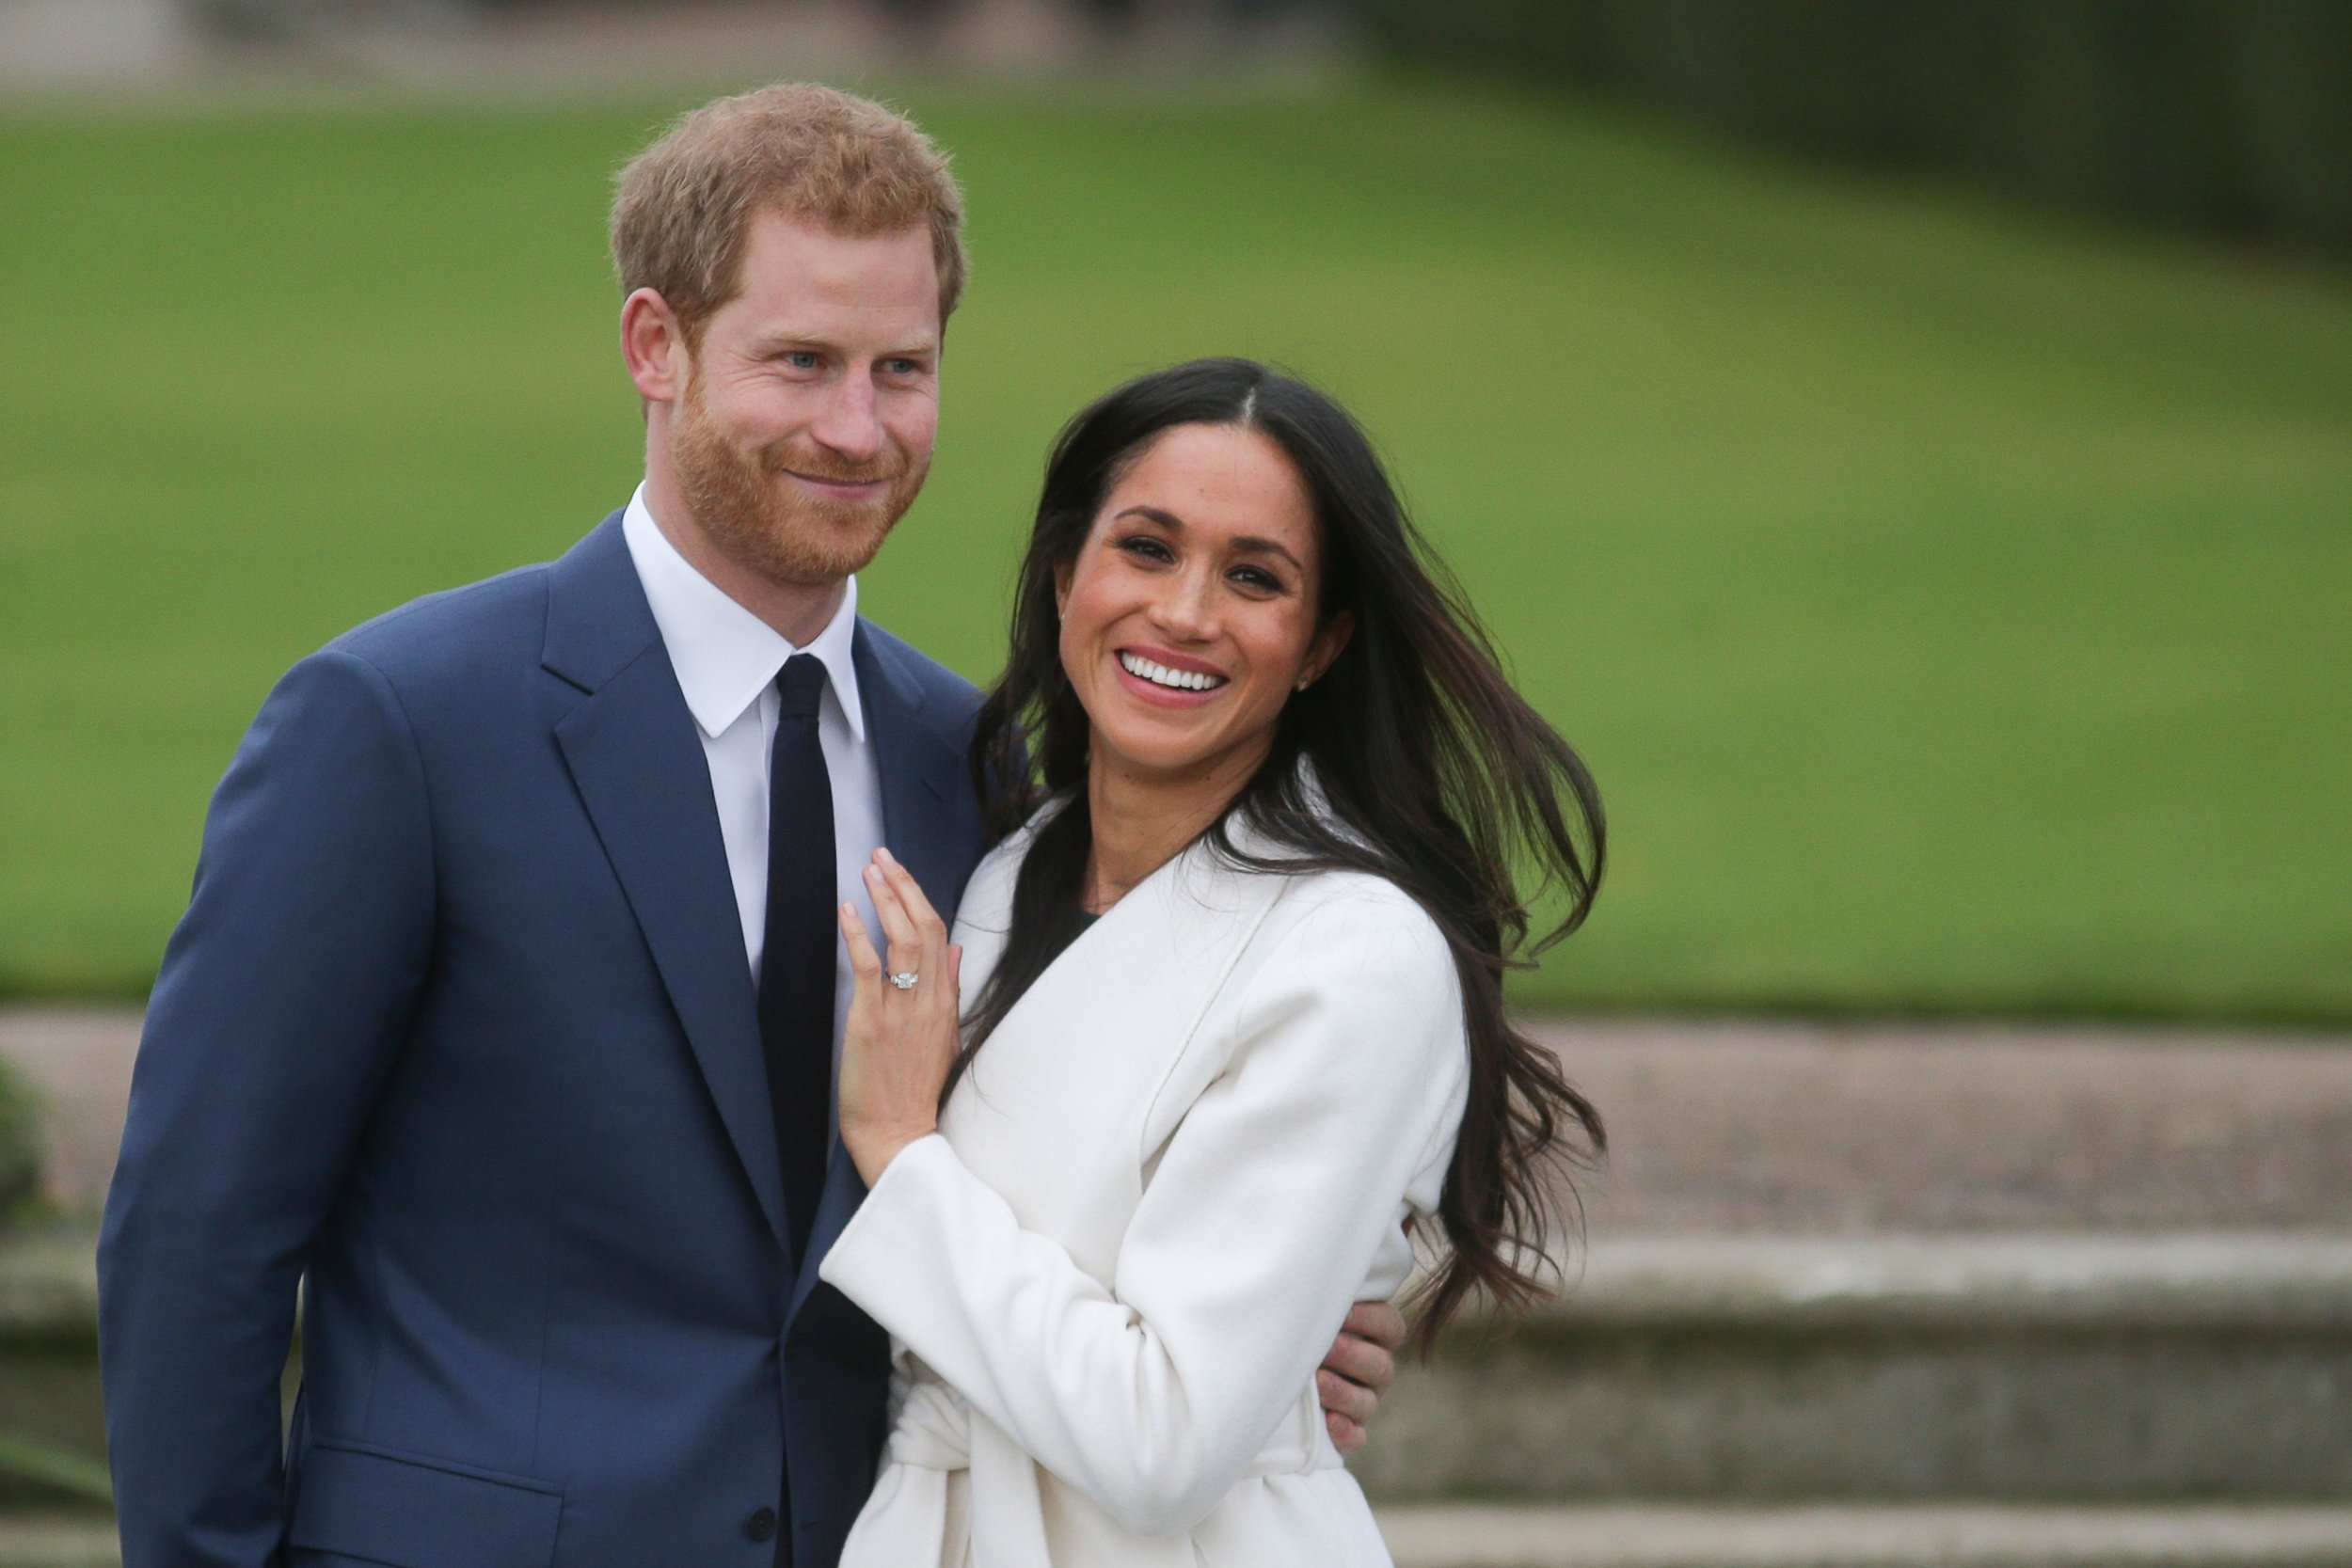 will meghan markle be a princess the royal title prince harry s future wife might receive. Black Bedroom Furniture Sets. Home Design Ideas